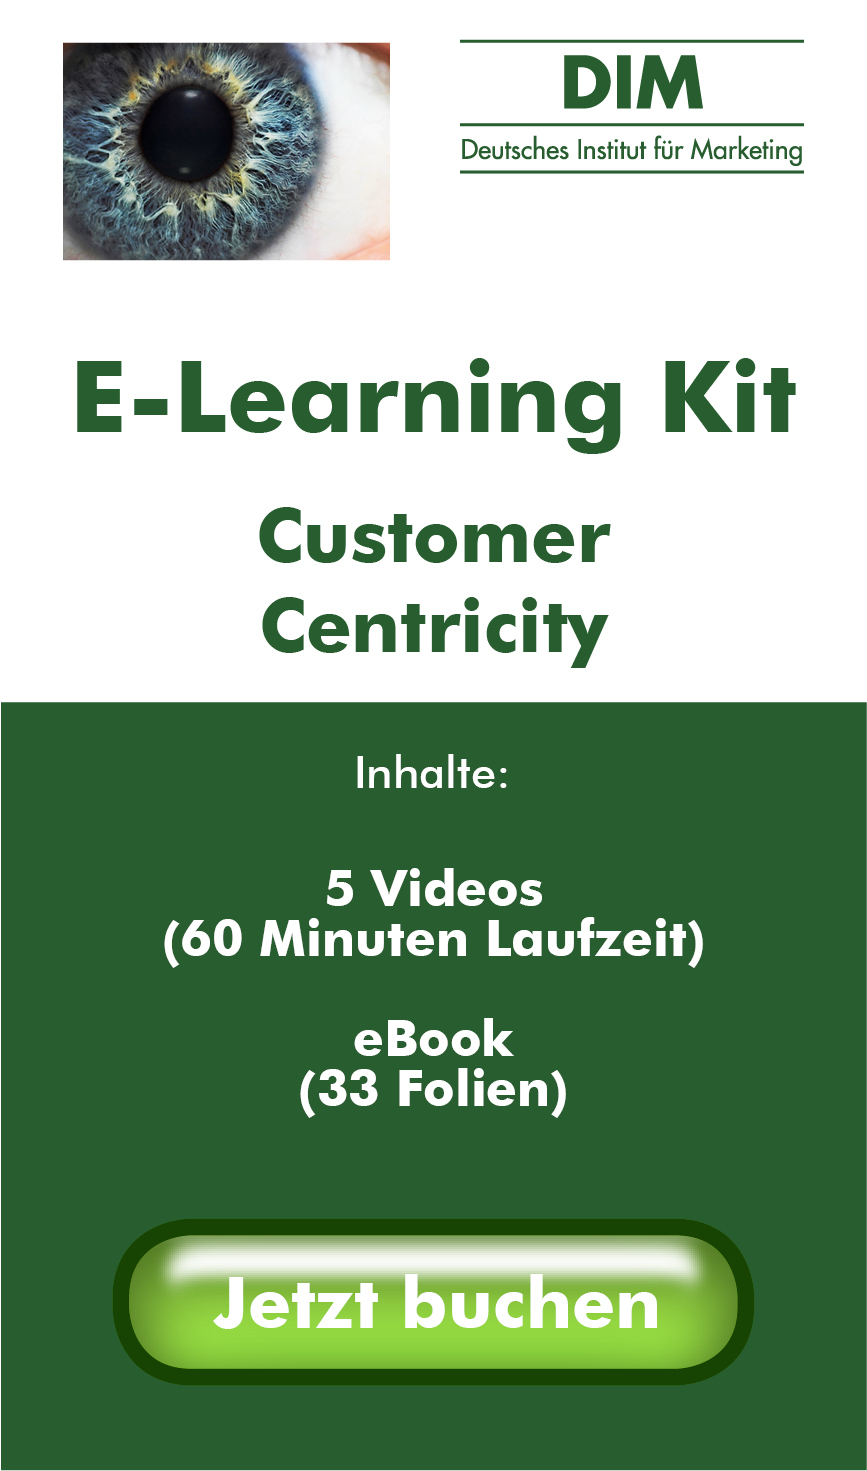 E-Learning Kit Customer Centricity